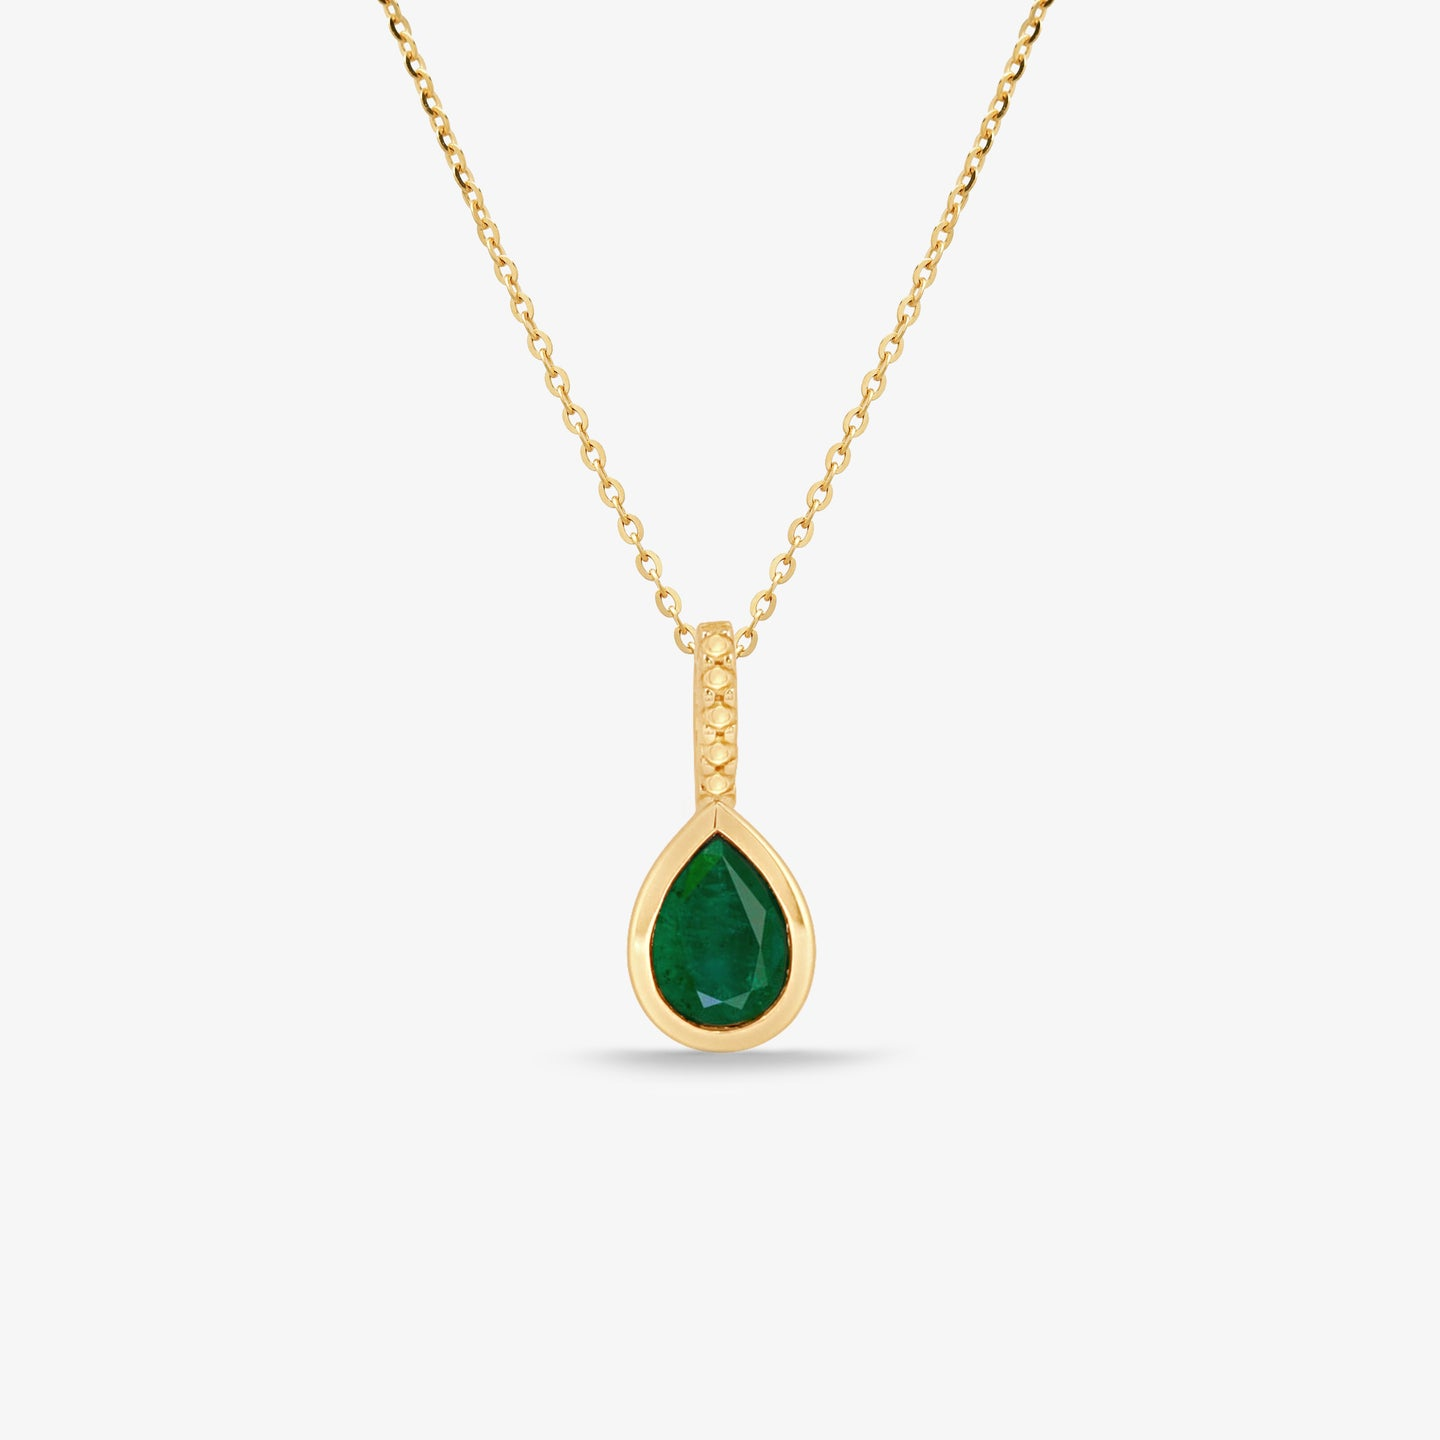 Green Agate Gem Stone Pendant Necklace With Adjustable Gold Chain - estellacollection